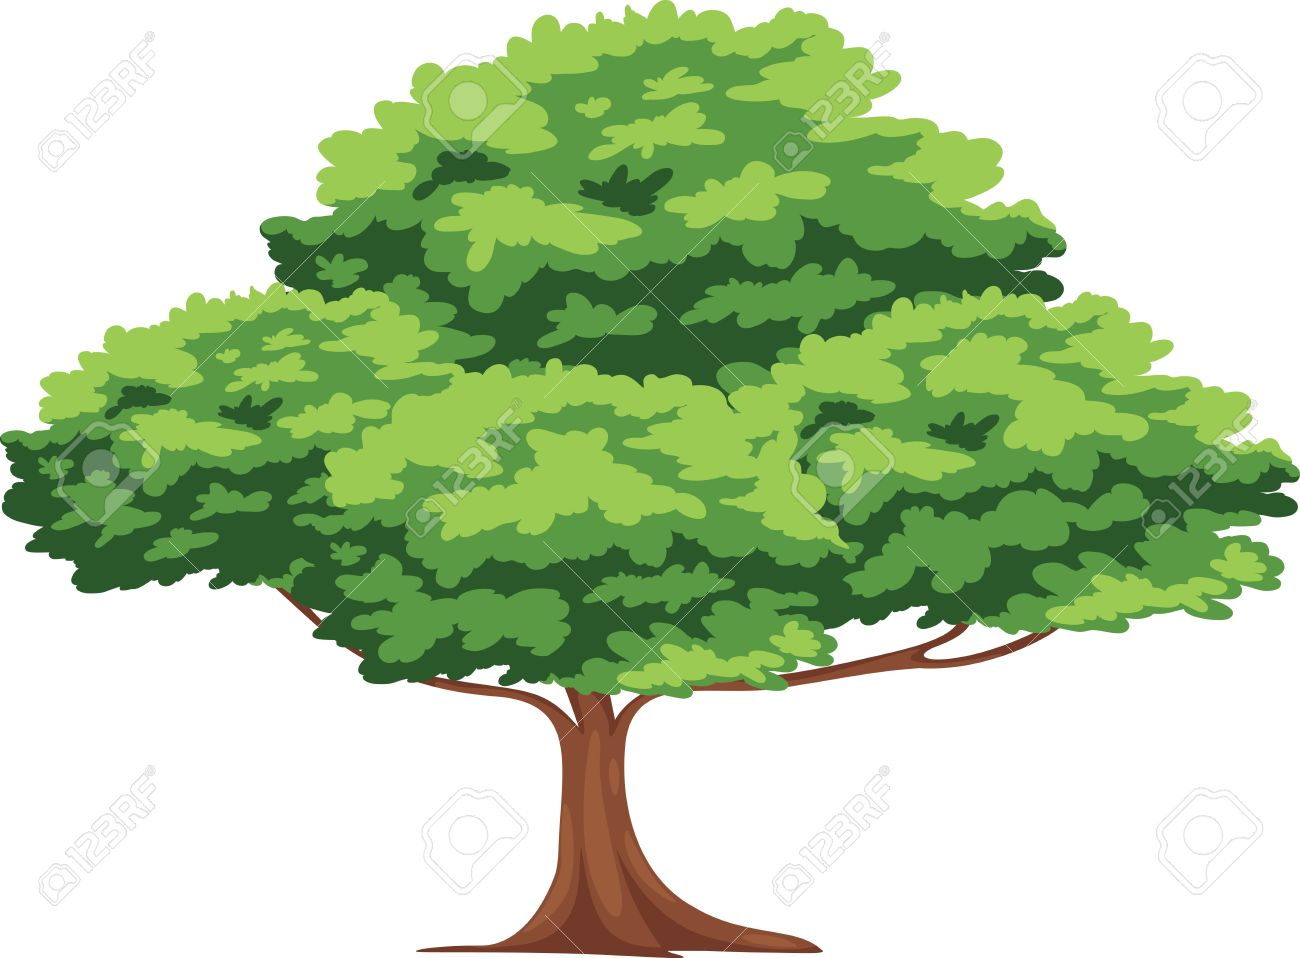 1300x958 Tree Png Vector Transparent Tree Vector.png Images. Pluspng